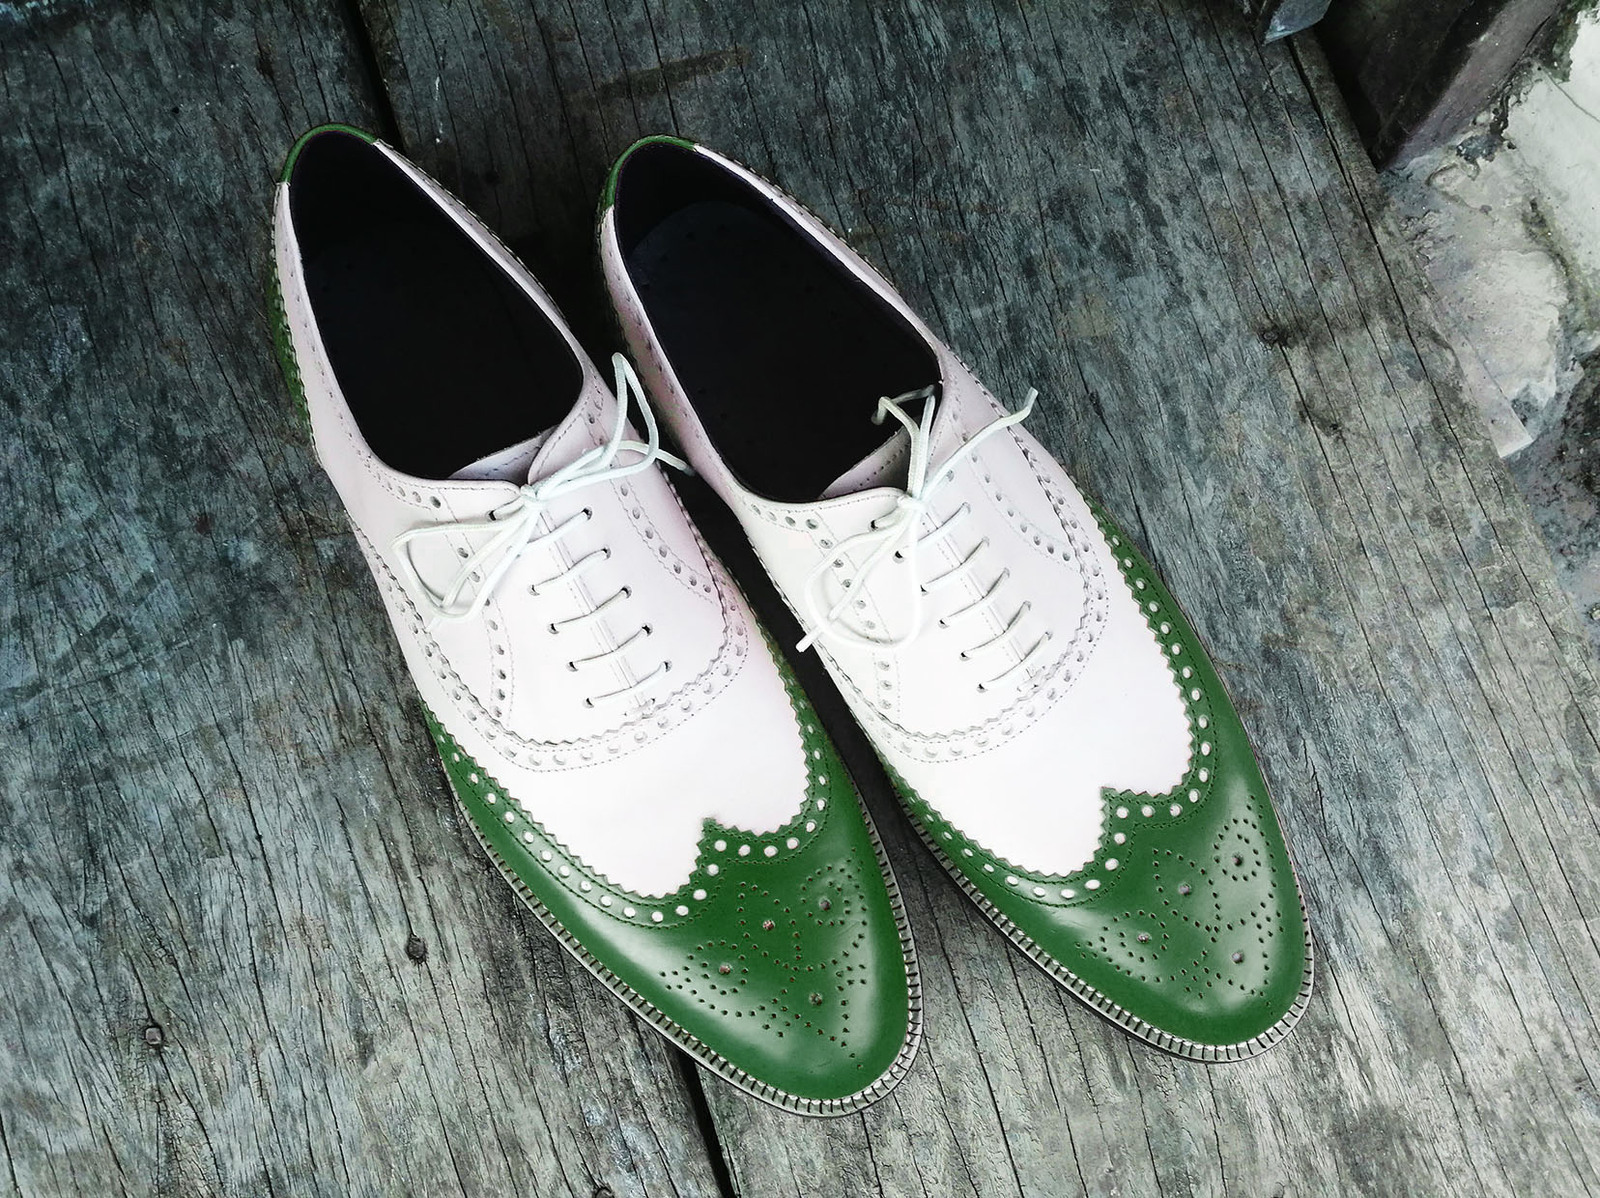 Handmade Men's Green & White Wing Tip Lace Up Dress/Formal Leather Shoes